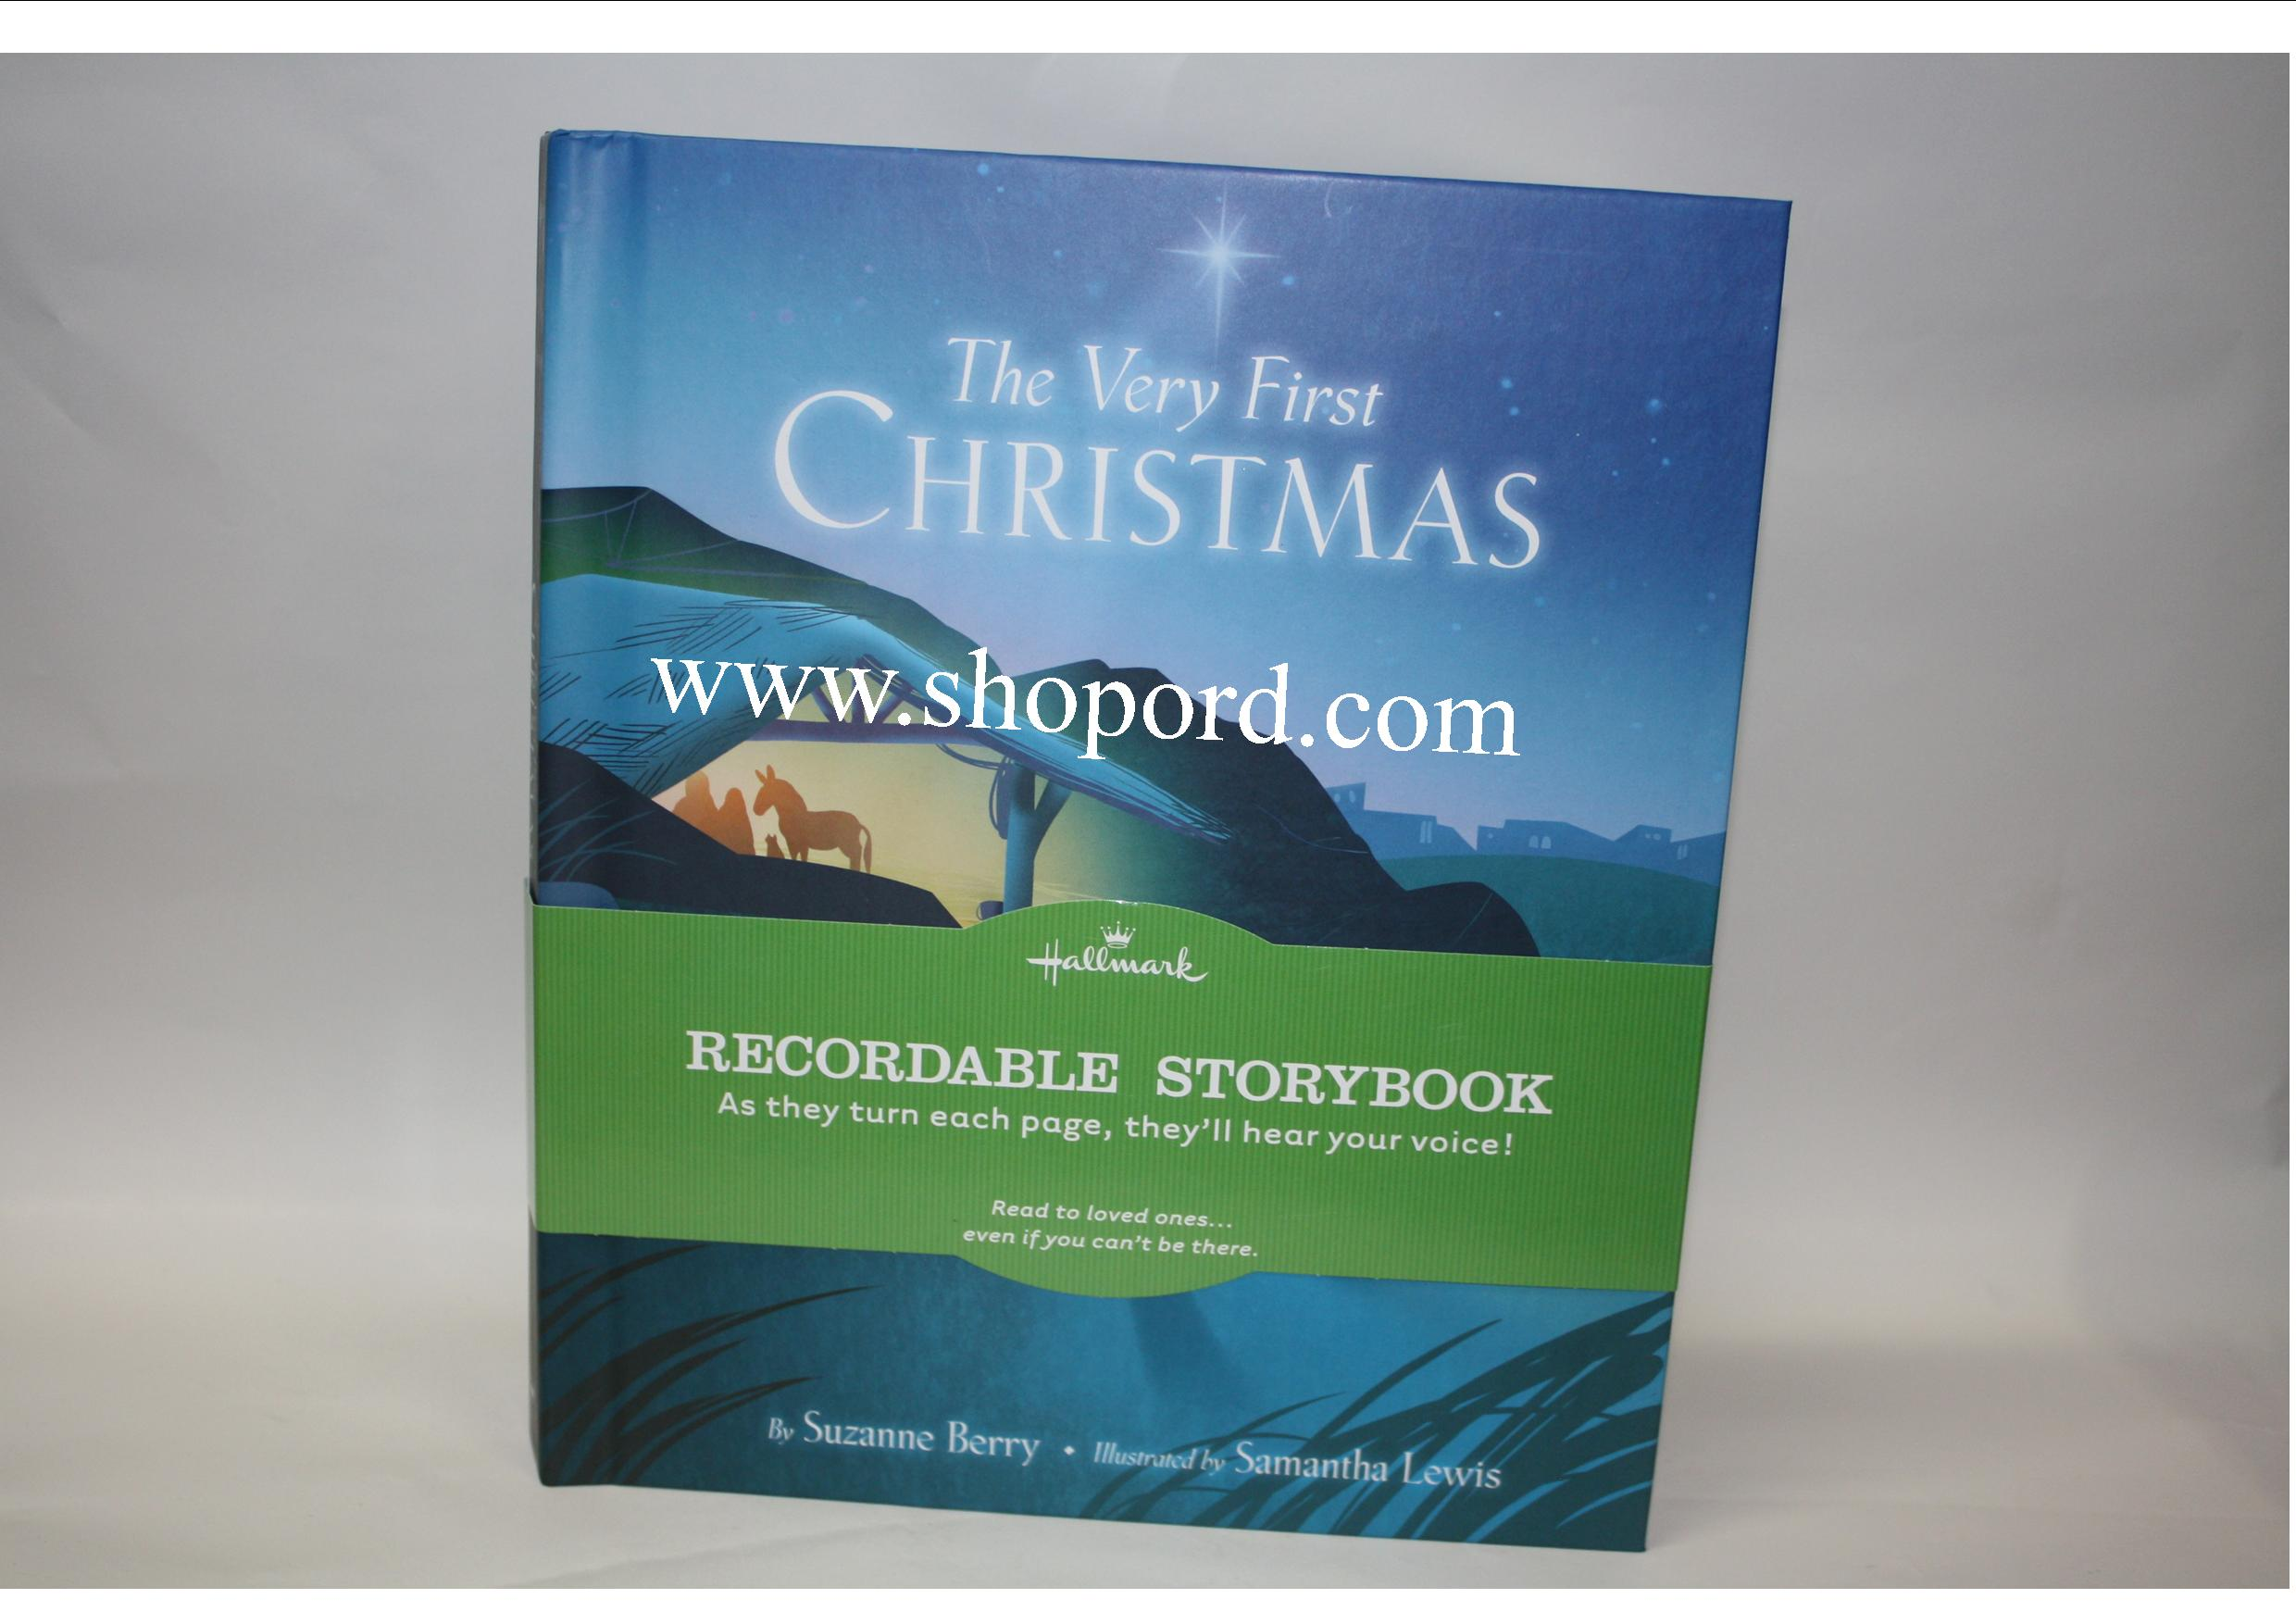 Recordable Christmas Books.Hallmark 2010 The Very First Christmas Recordable Storybook